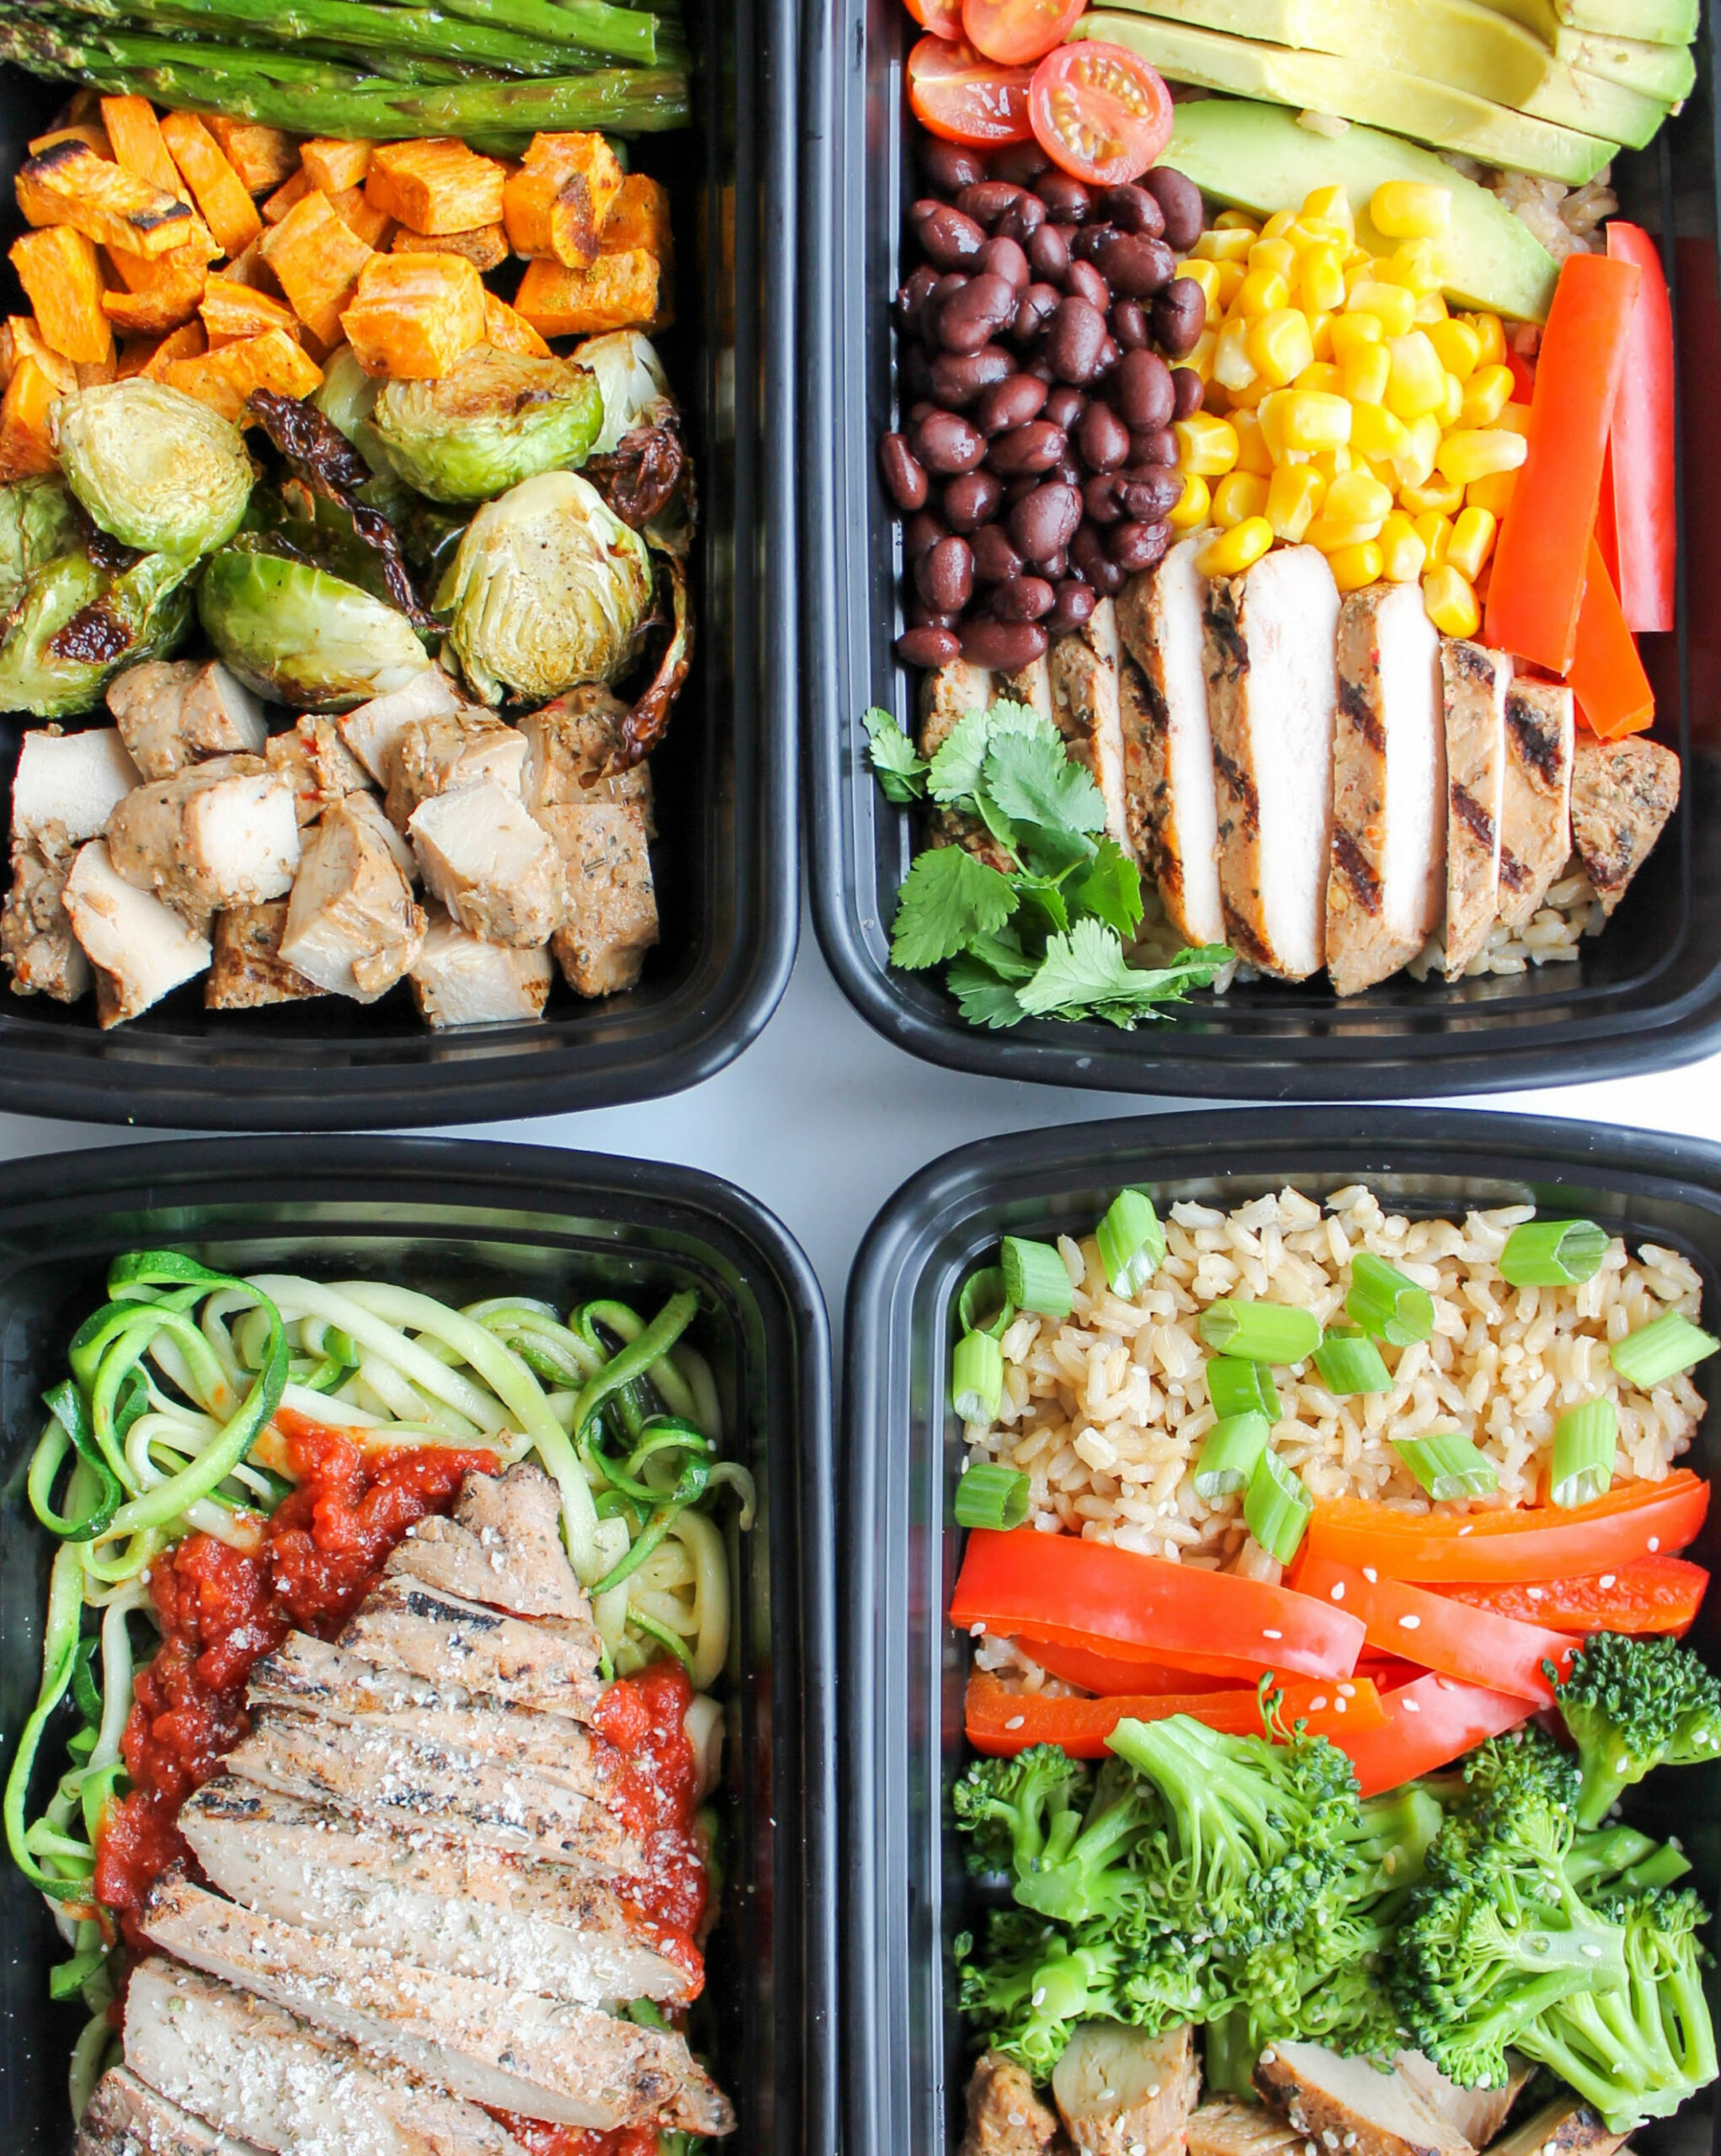 Easy Chicken Meal Prep Bowls: 14 Ways - Smile Sandwich - meal prep recipes chicken breast